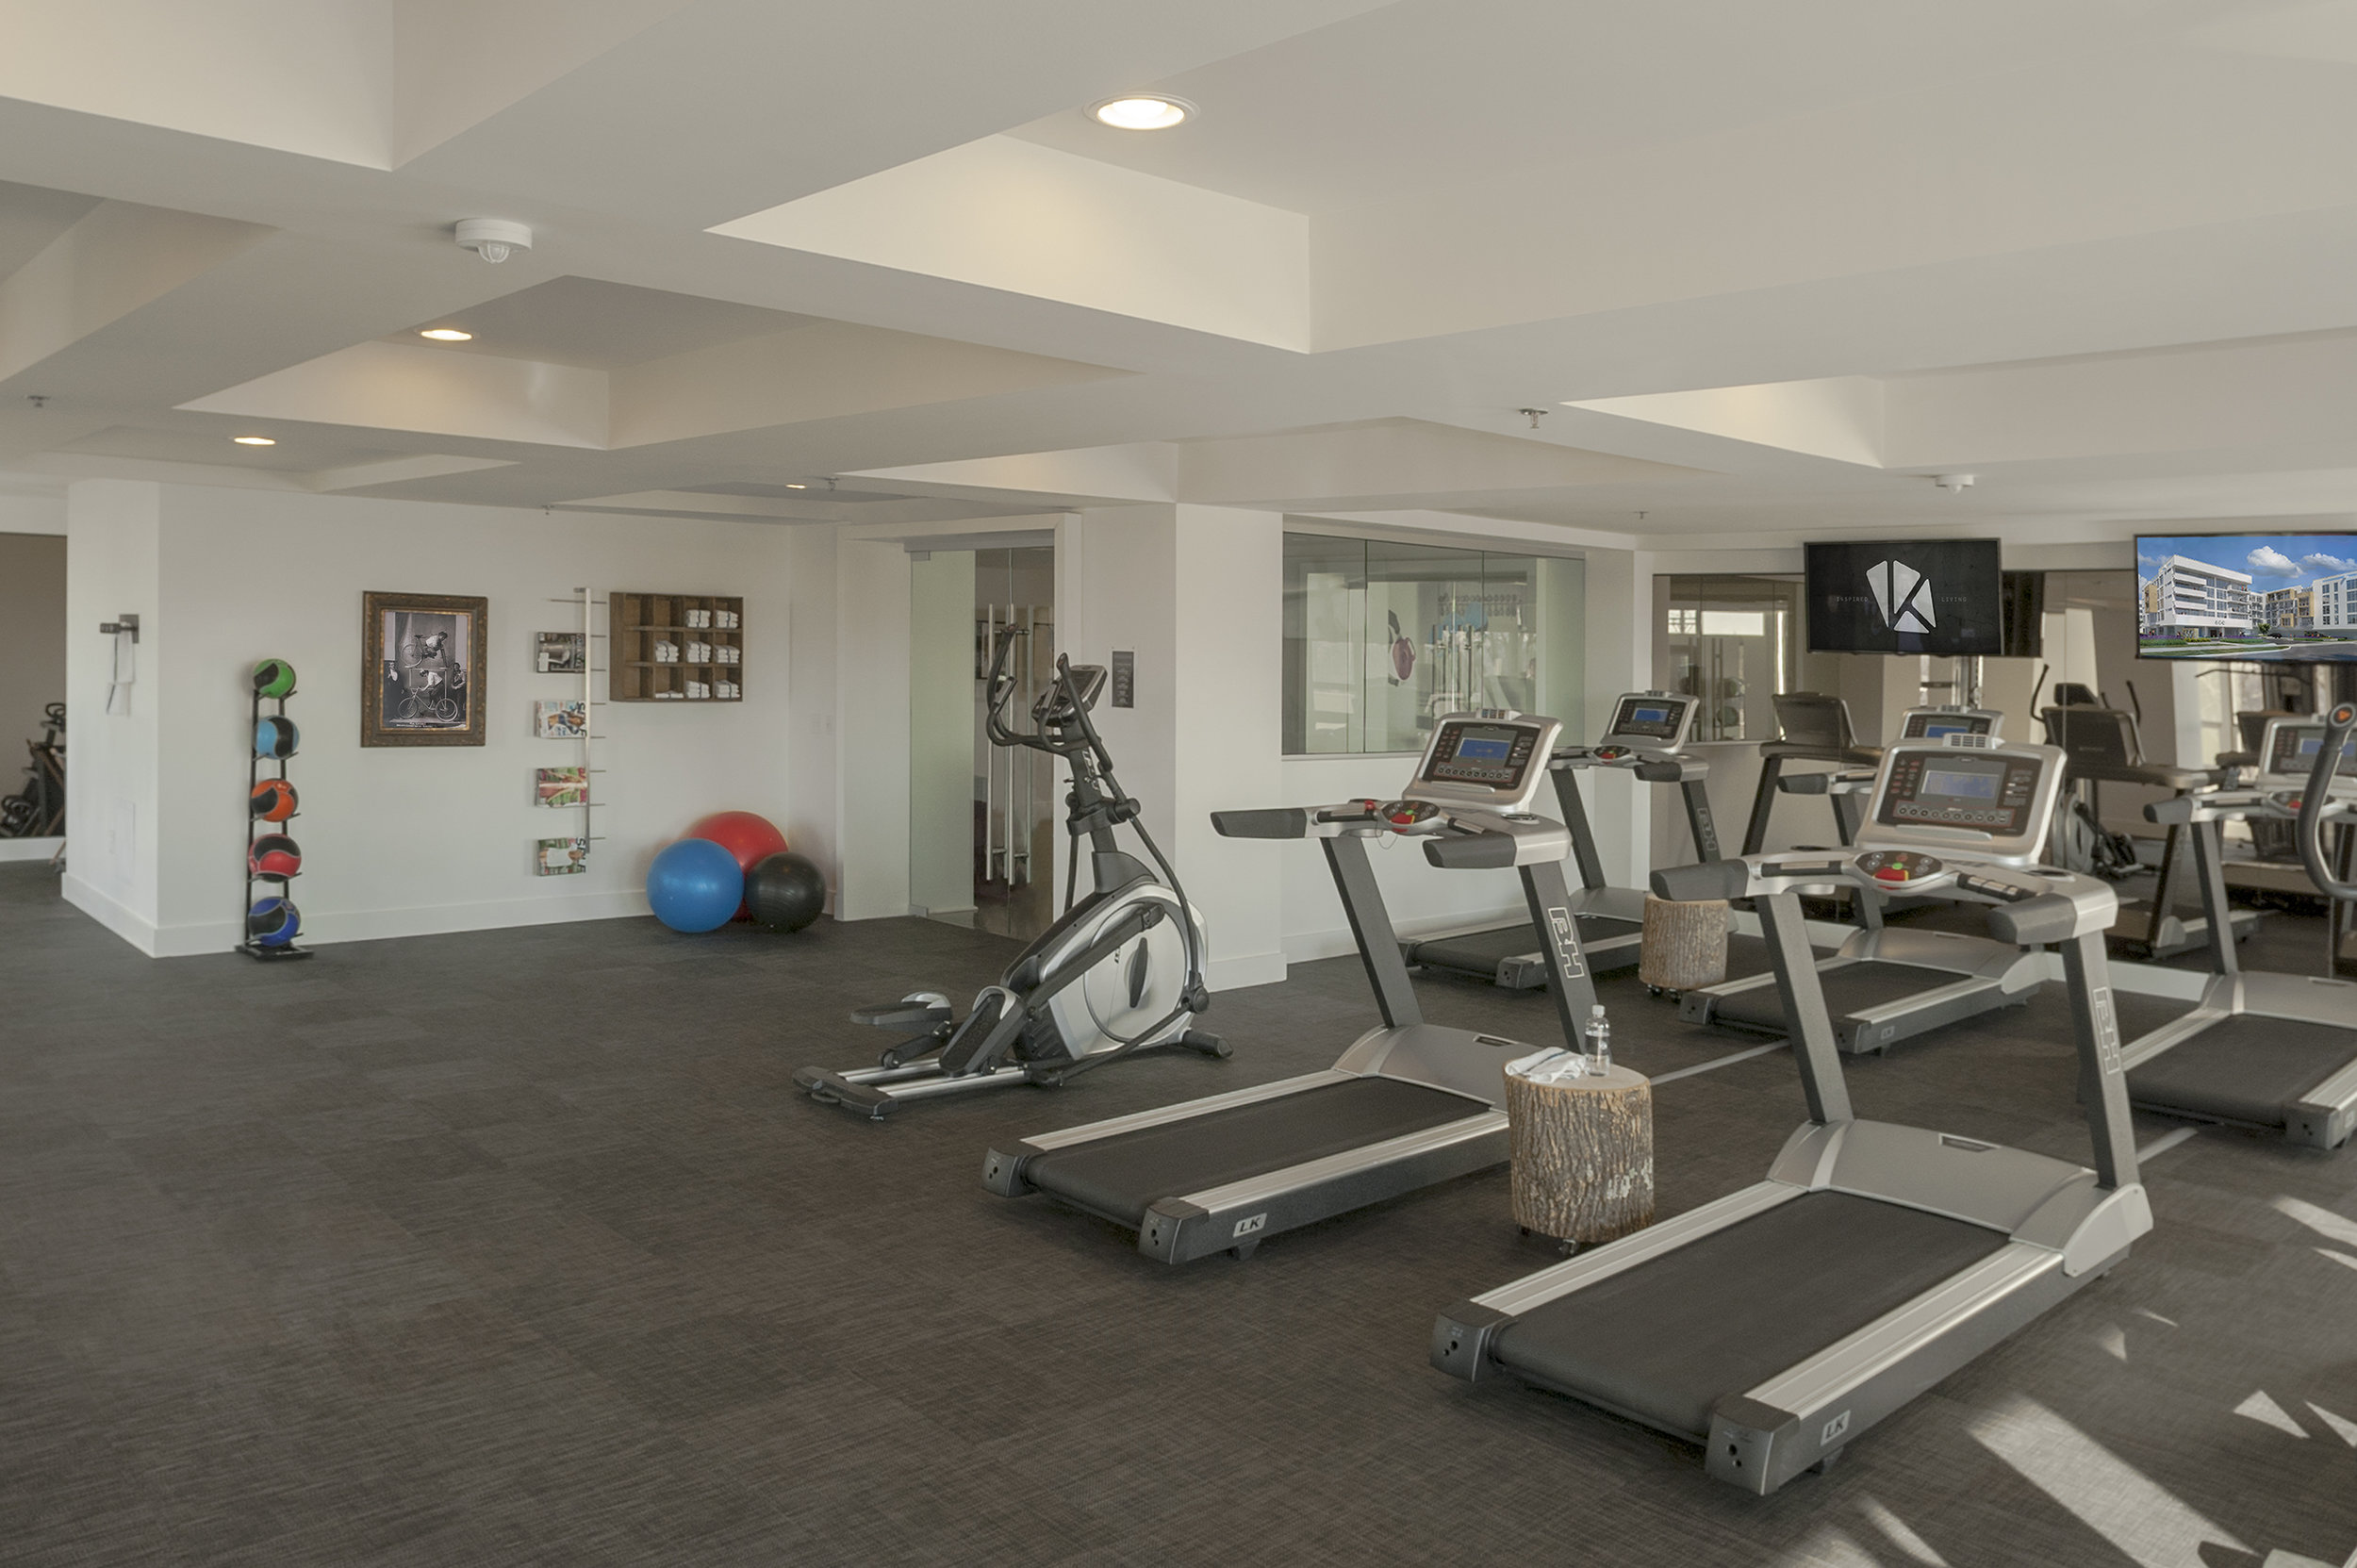 Copy of 600 Goodale Fitness Area 2.jpg